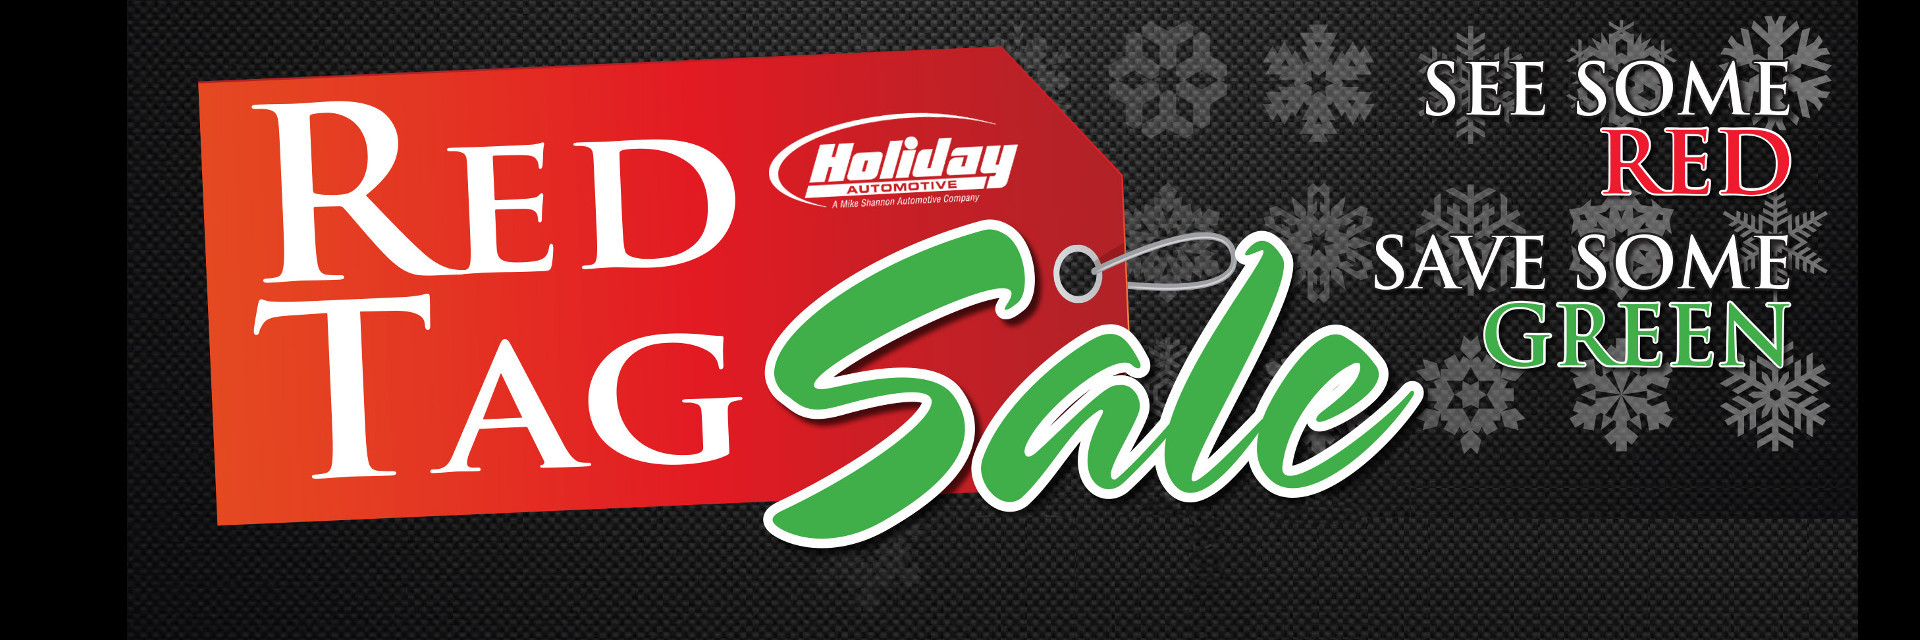 Check out our big sale this season